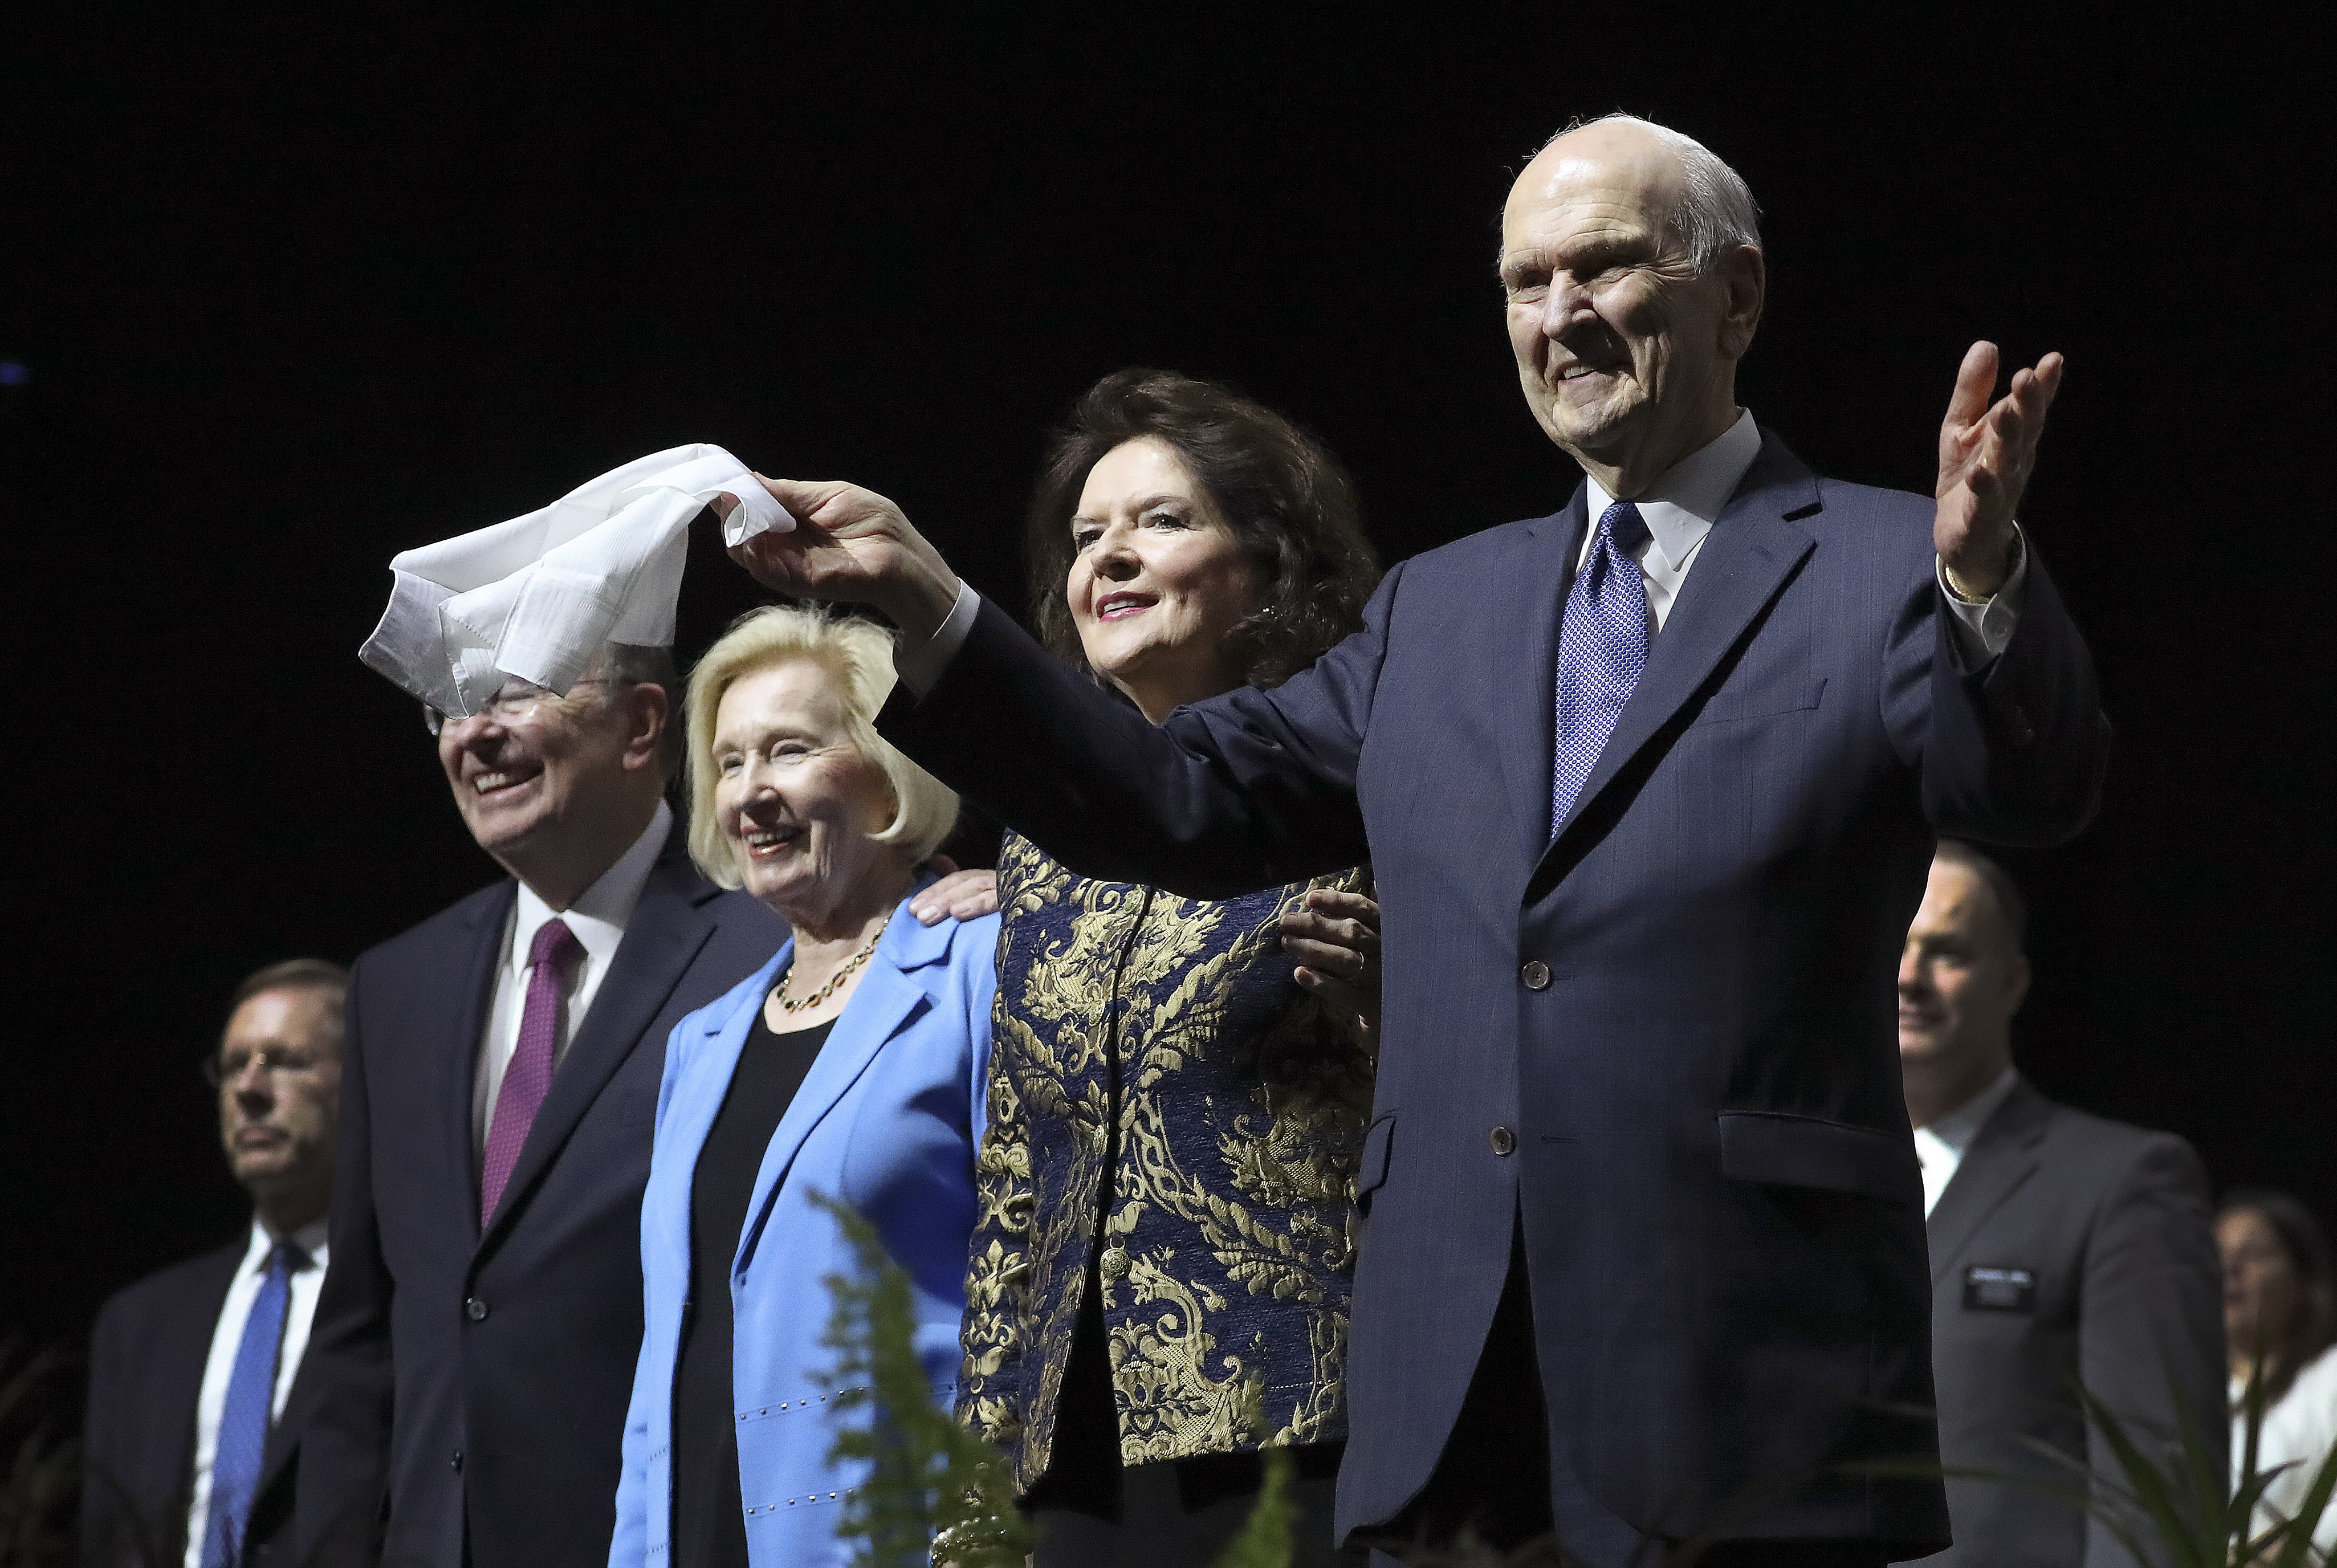 President Russell M. Nelson of The Church of Jesus Christ of Latter-day Saints and his wife, Sister Wendy Nelson, with Elder Quentin L. Cook, Quorum of the Twelve Apostles, and his wife, Sister Mary Cook,wave to attendees after a devotional in Buenos Aires, Argentina, on Wednesday, Aug. 28, 2019.